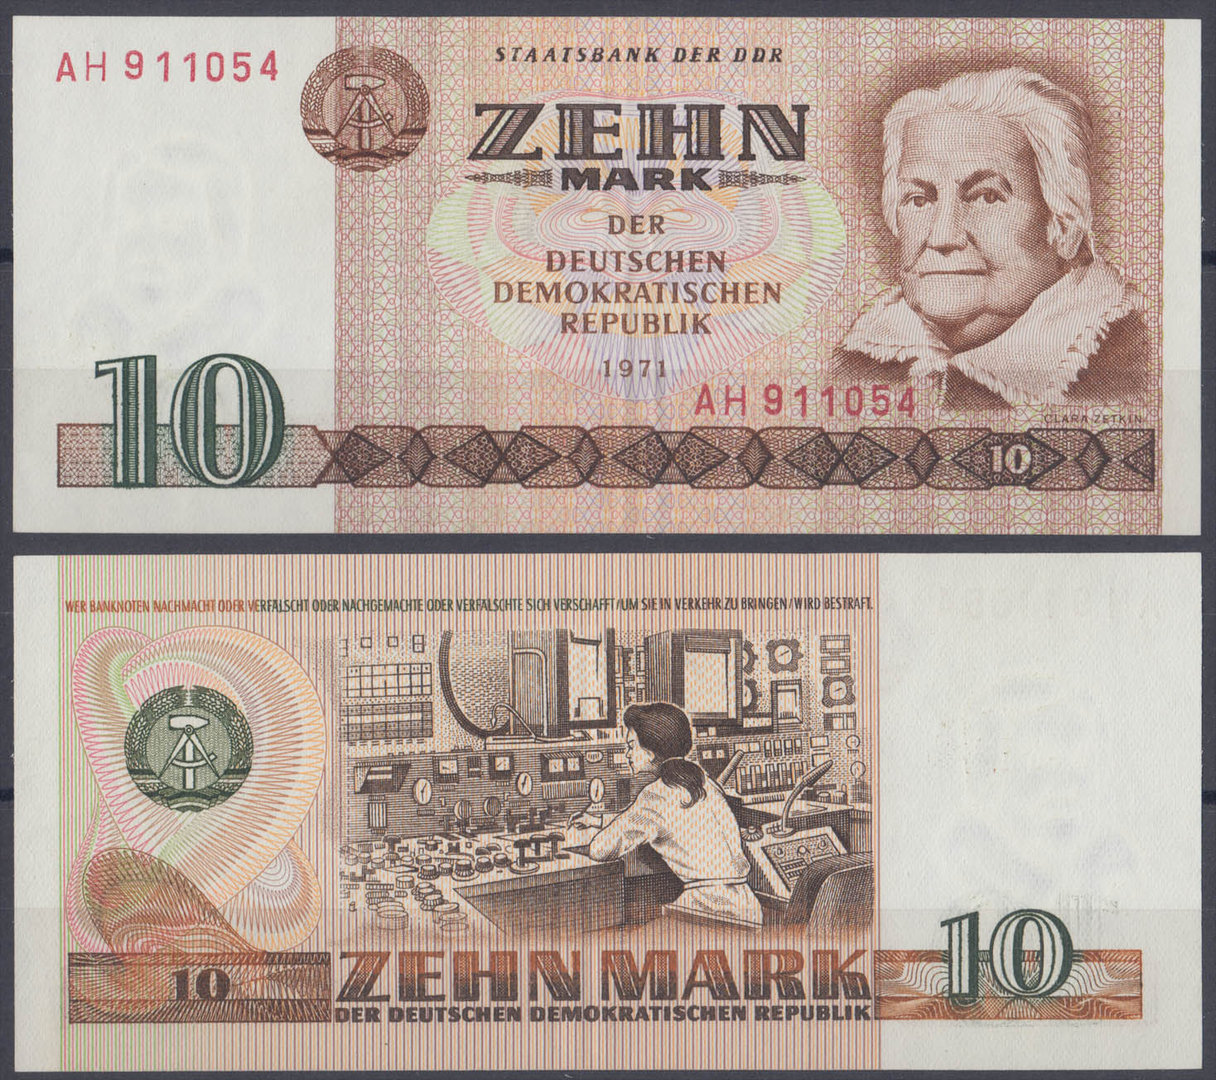 ALEMANIA - GERMANY. 10 MARCOS (MARK) DE 1971. SIN CIRCULAR.